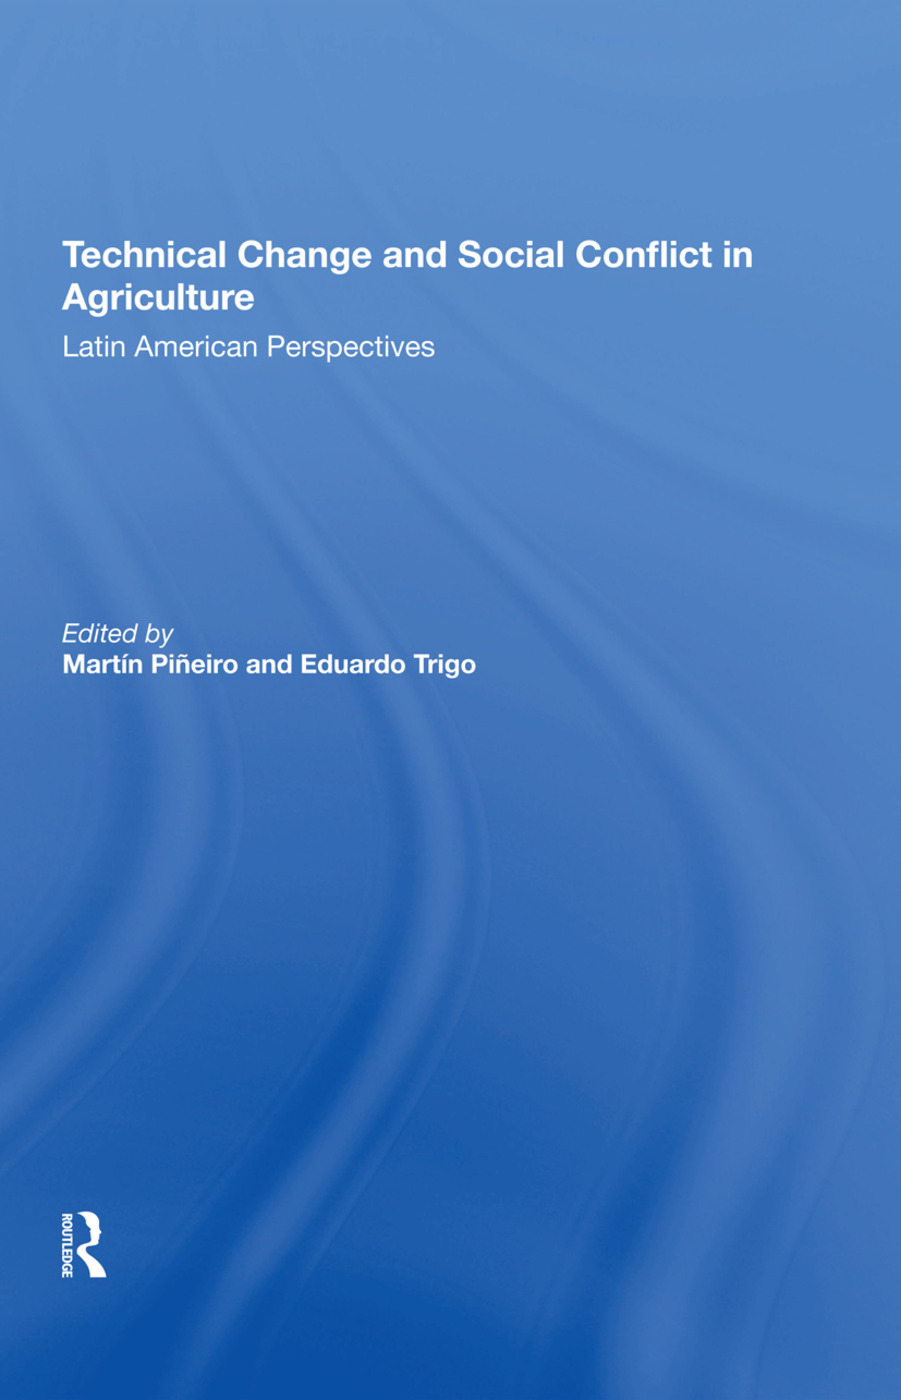 Technical Change And Social Conflict In Agriculture: Latin American Perspectives, 1st Edition (Hardback) book cover